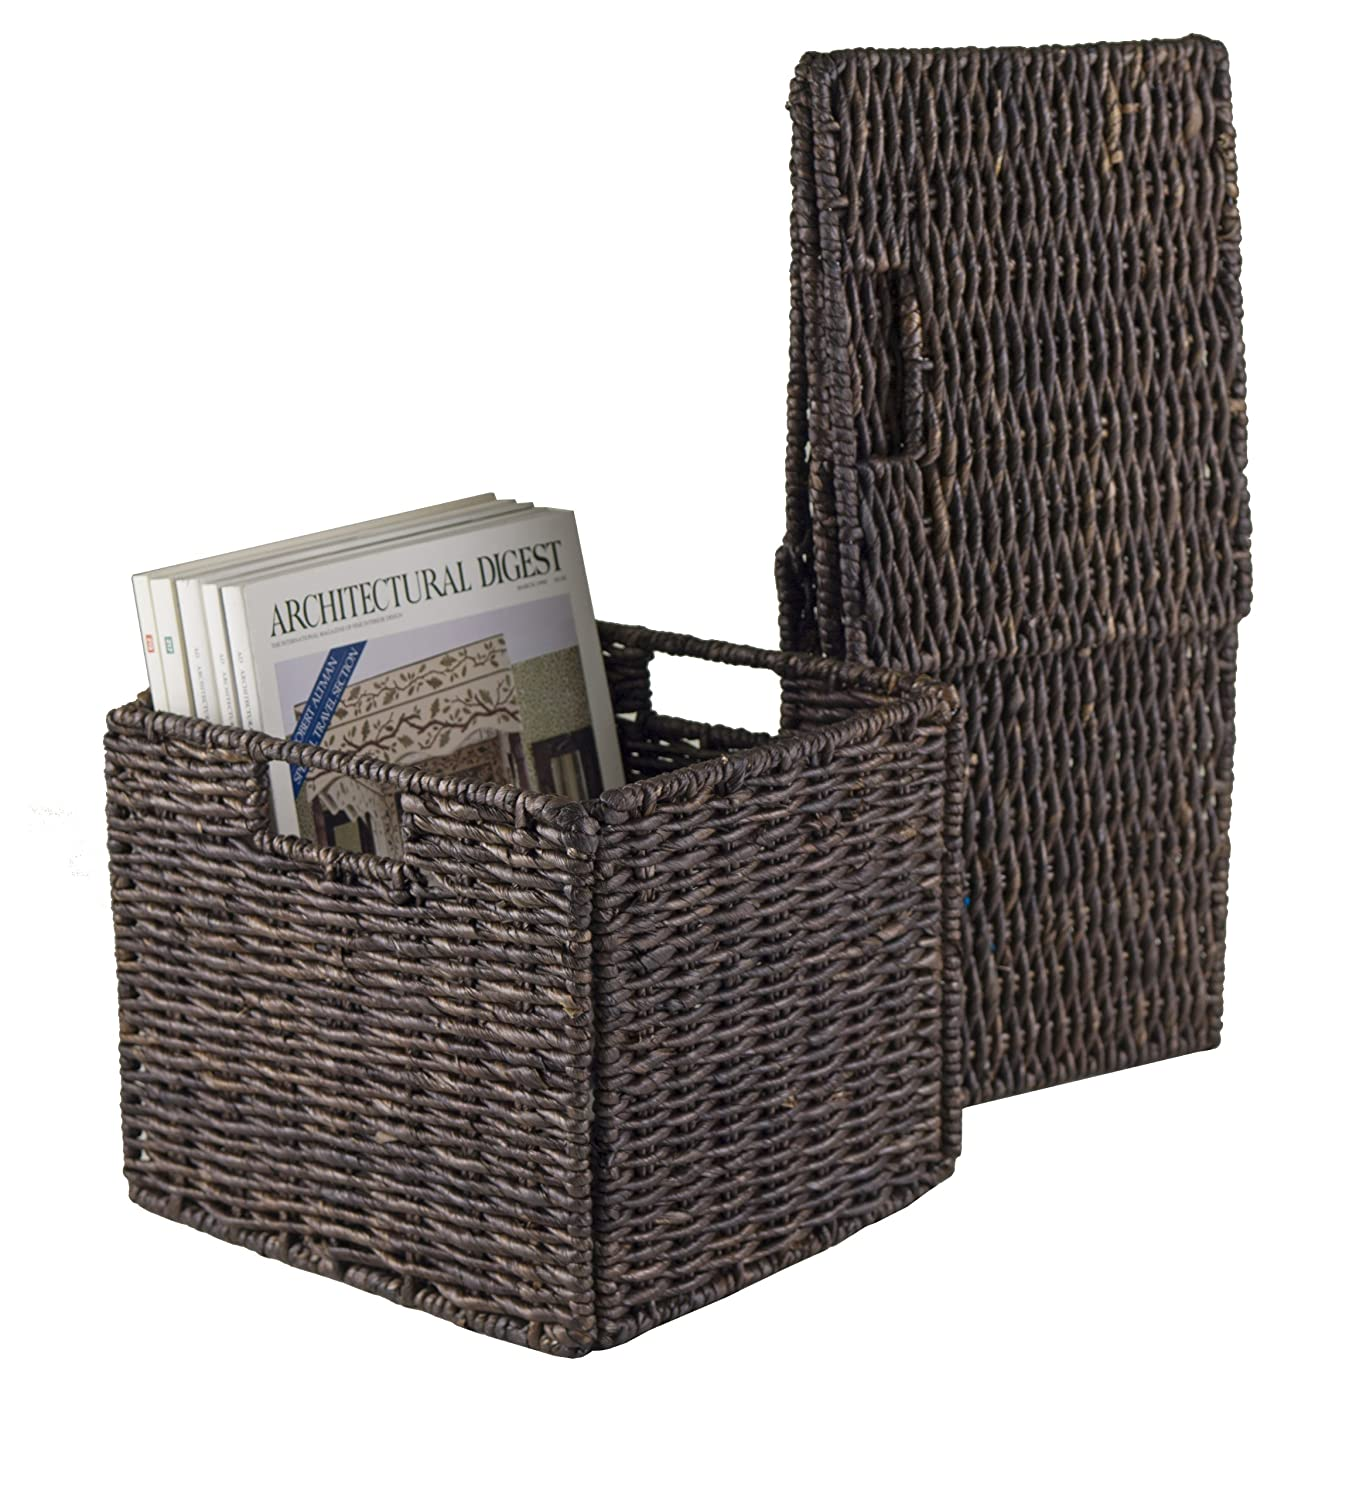 Winsome Wood Granville Foldable Baskets Small Set of 2 Winsome Trading 38207